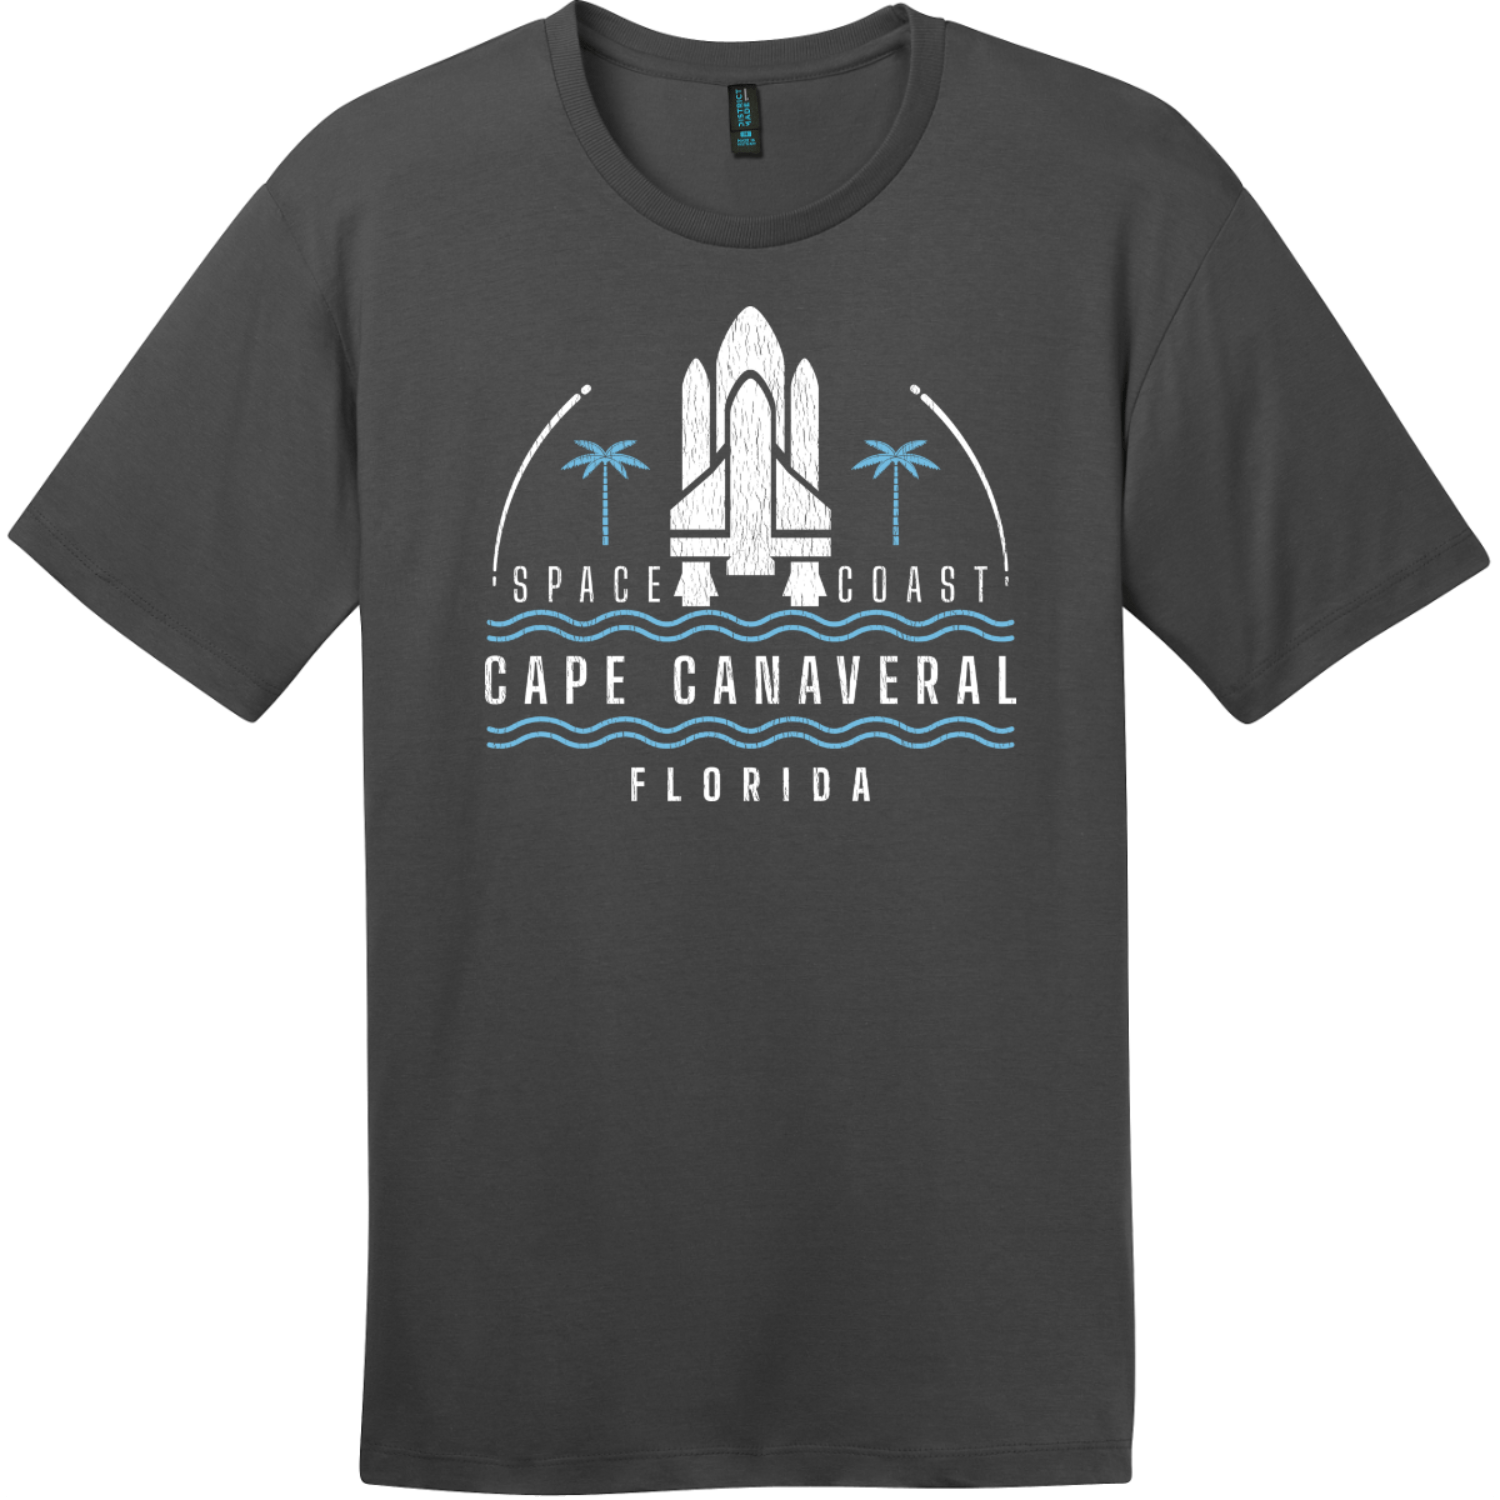 Cape Canaveral Space Coast Vintage T-Shirt Charcoal District Perfect Weight Tee DT104